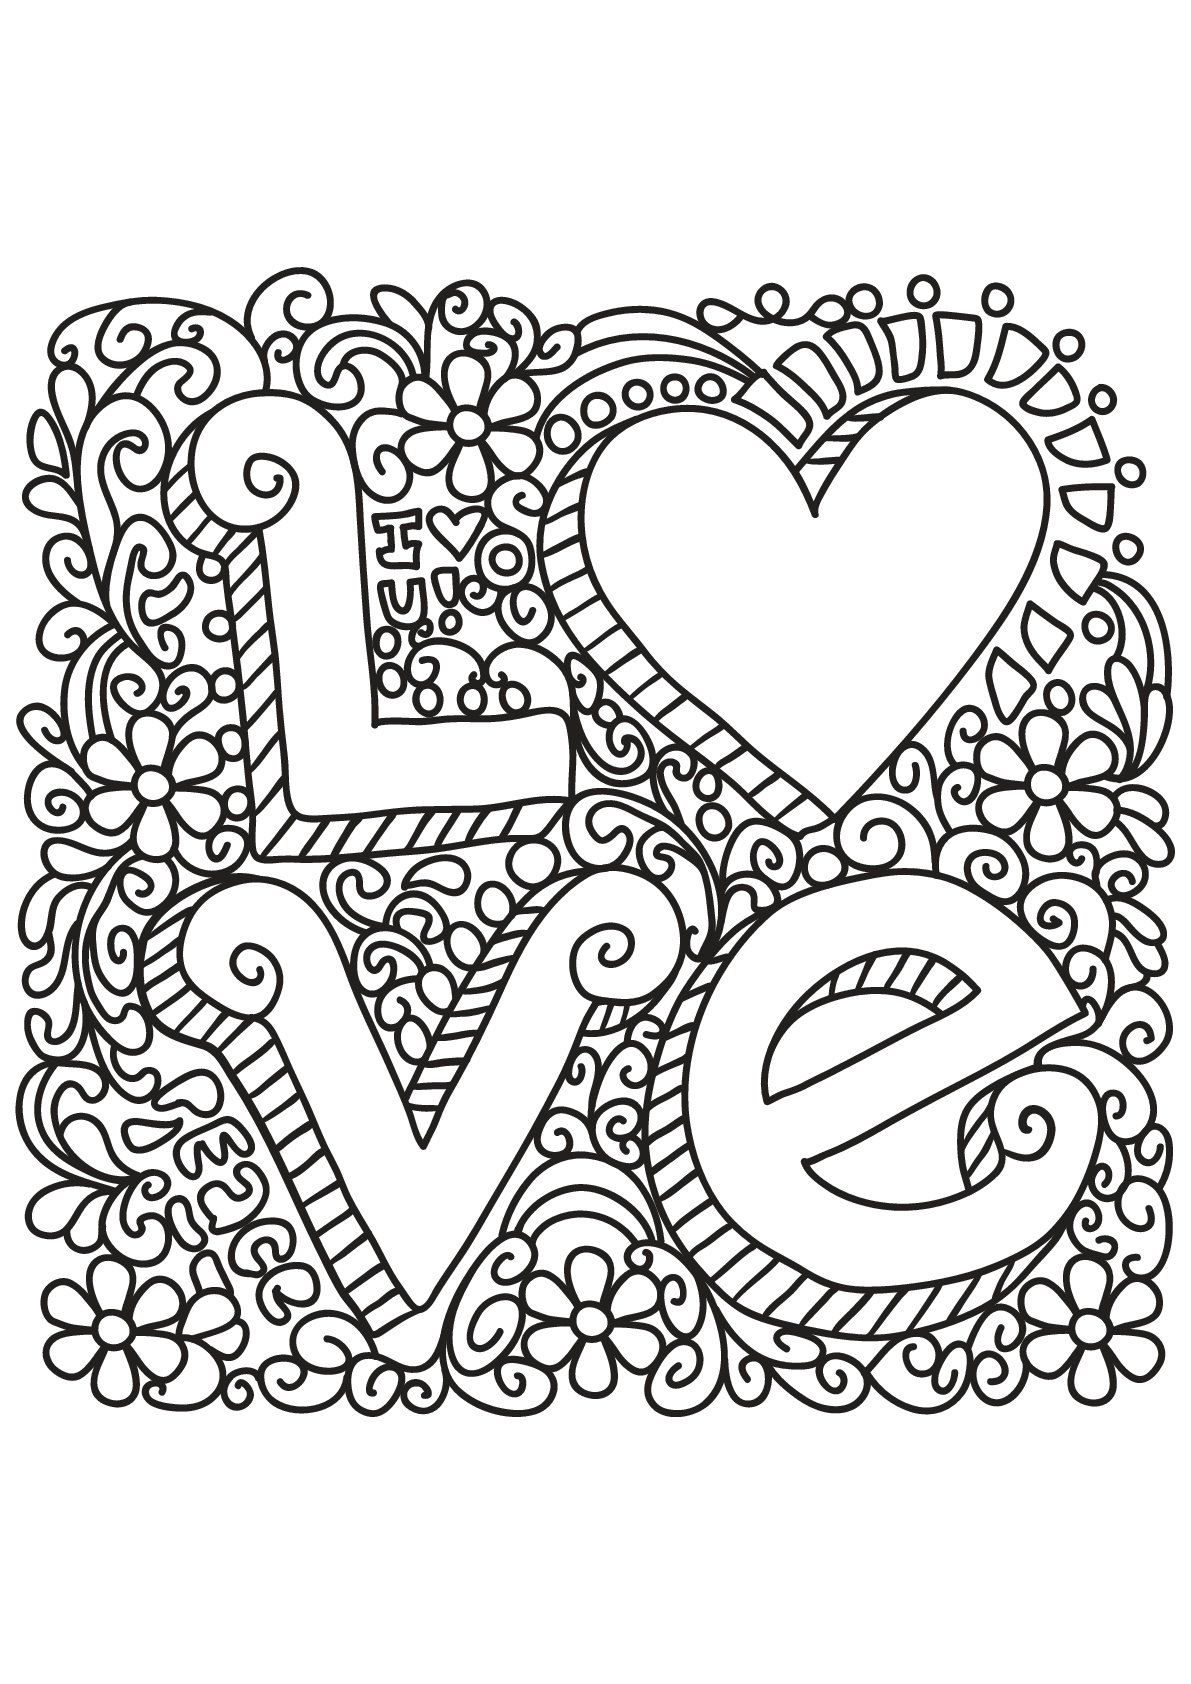 Free Coloring Pages Hearts Coloring Ideas Free Valentine Coloring Pages Hearts And Roses Love